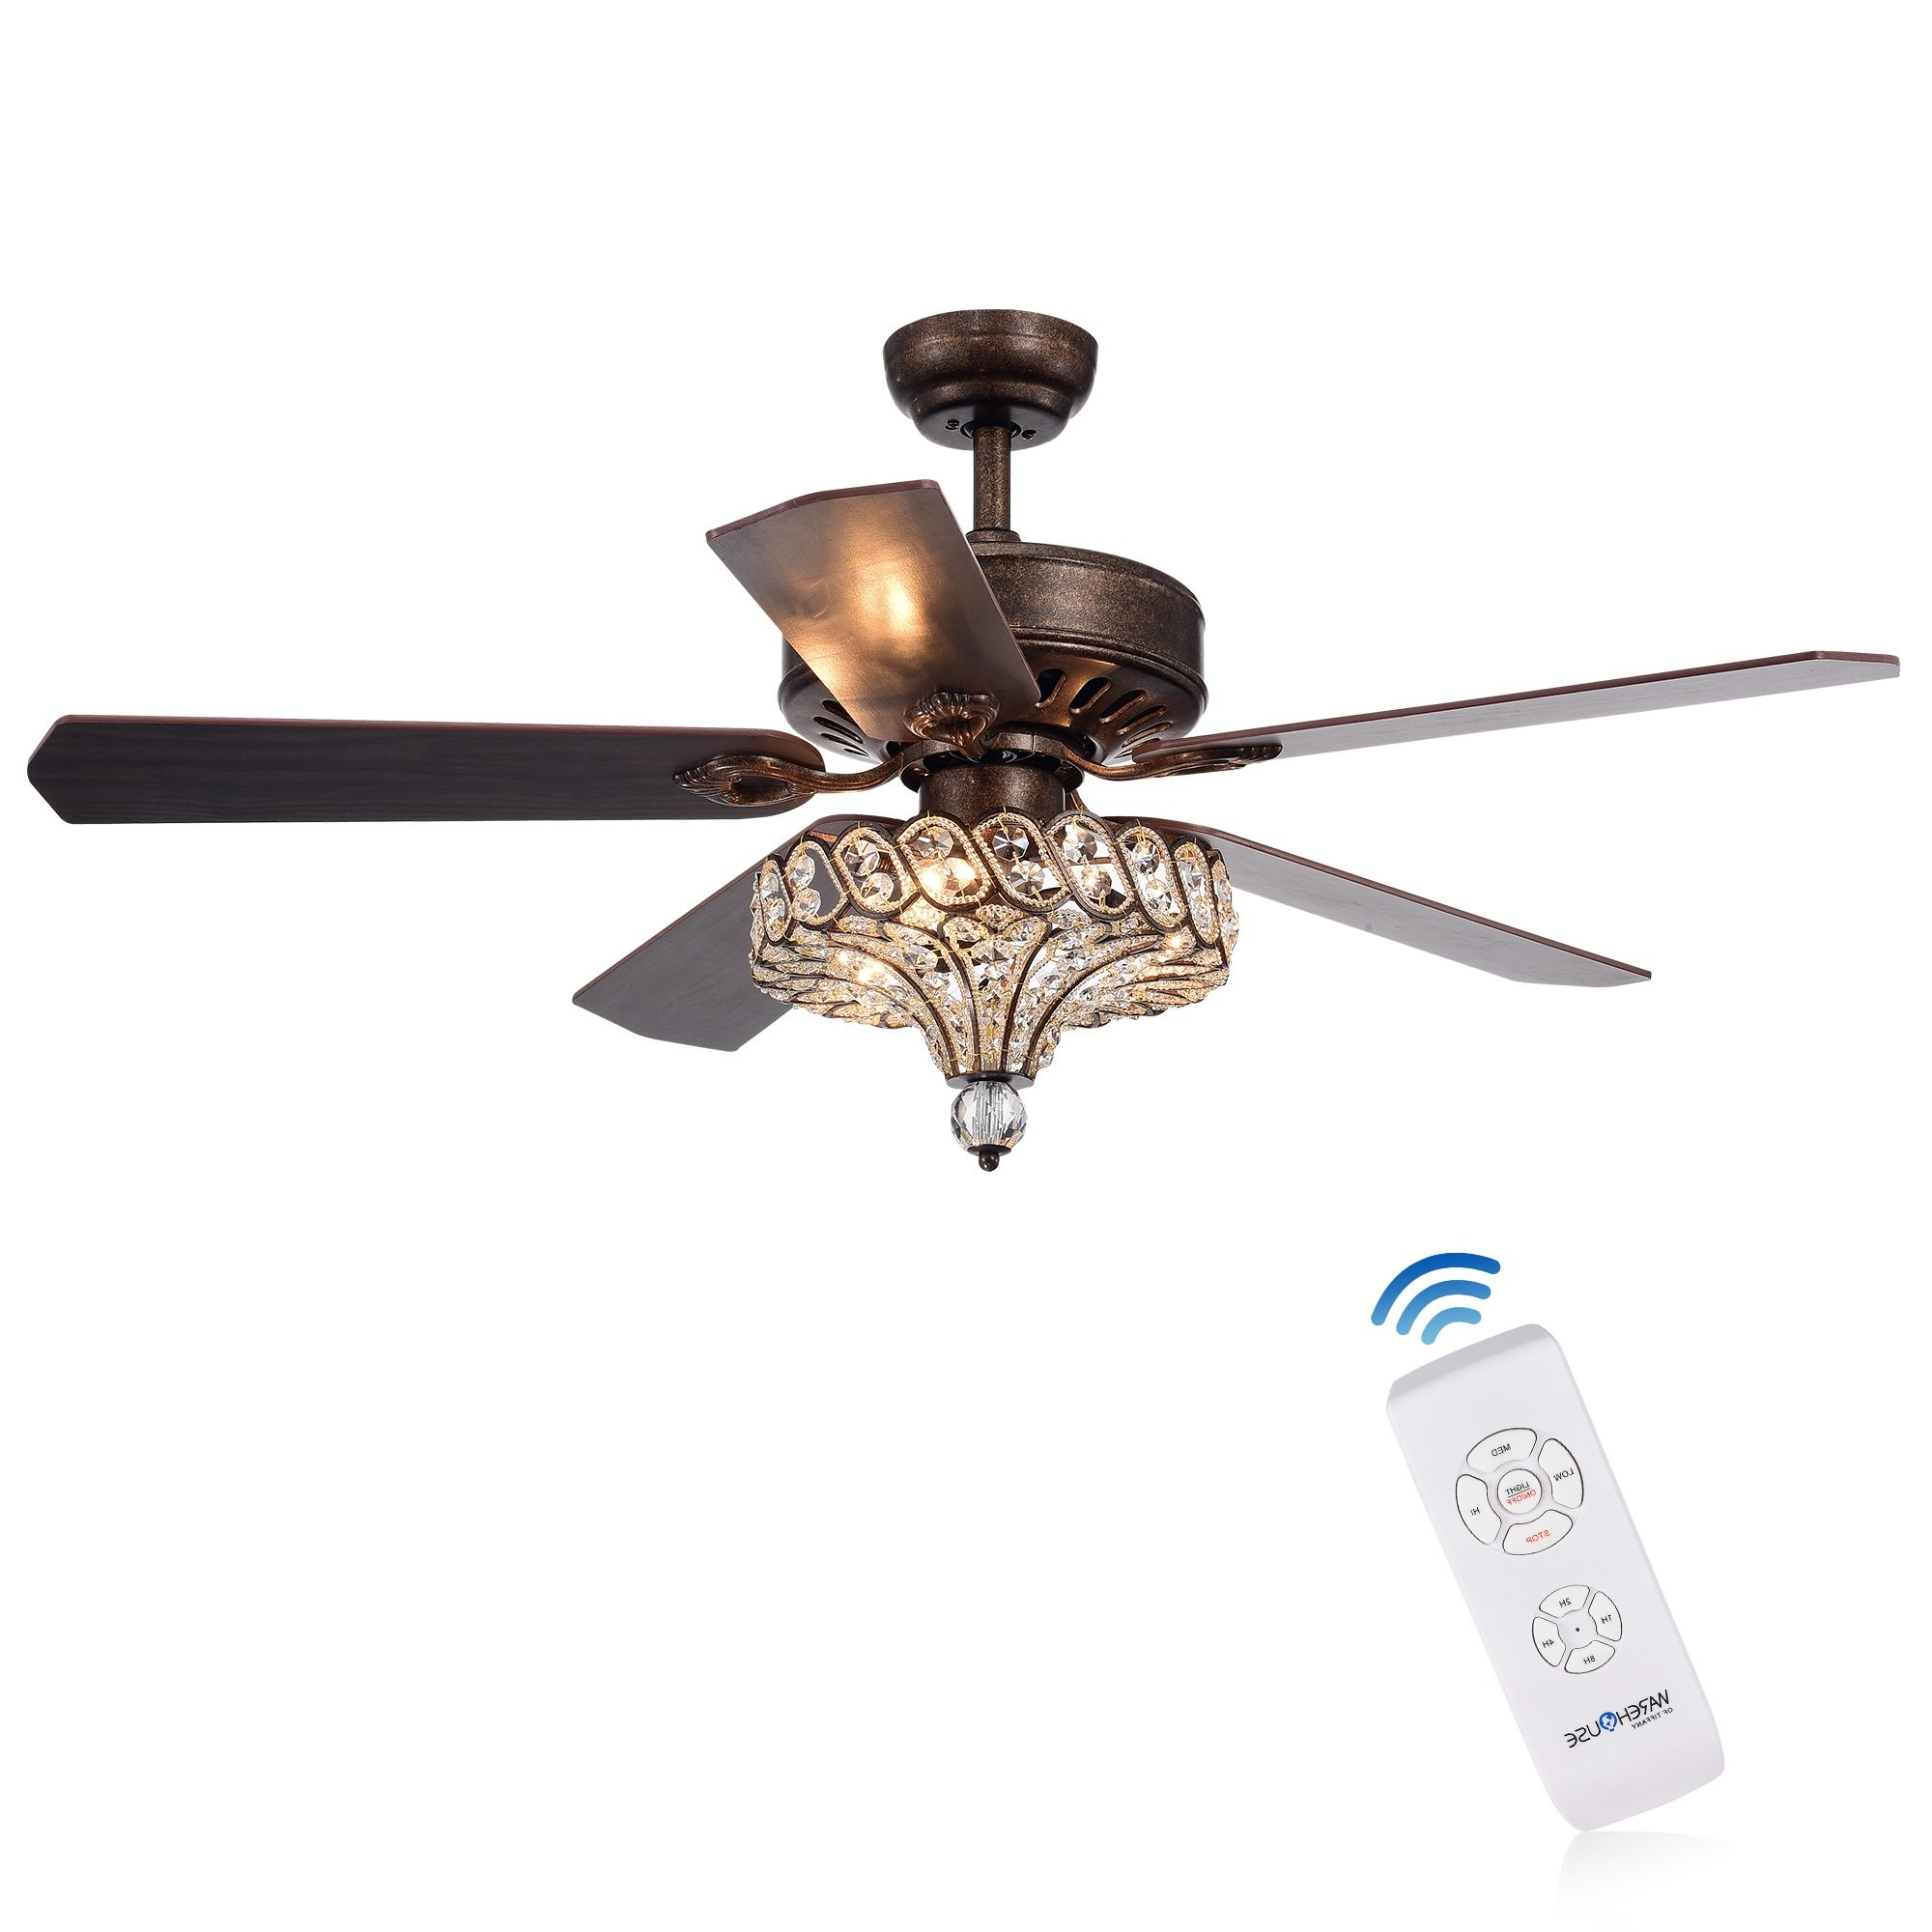 "52"" Menzies 5 Blade Ceiling Fan With Remote With Most Up To Date 5 Blade Ceiling Fans (View 20 of 20)"